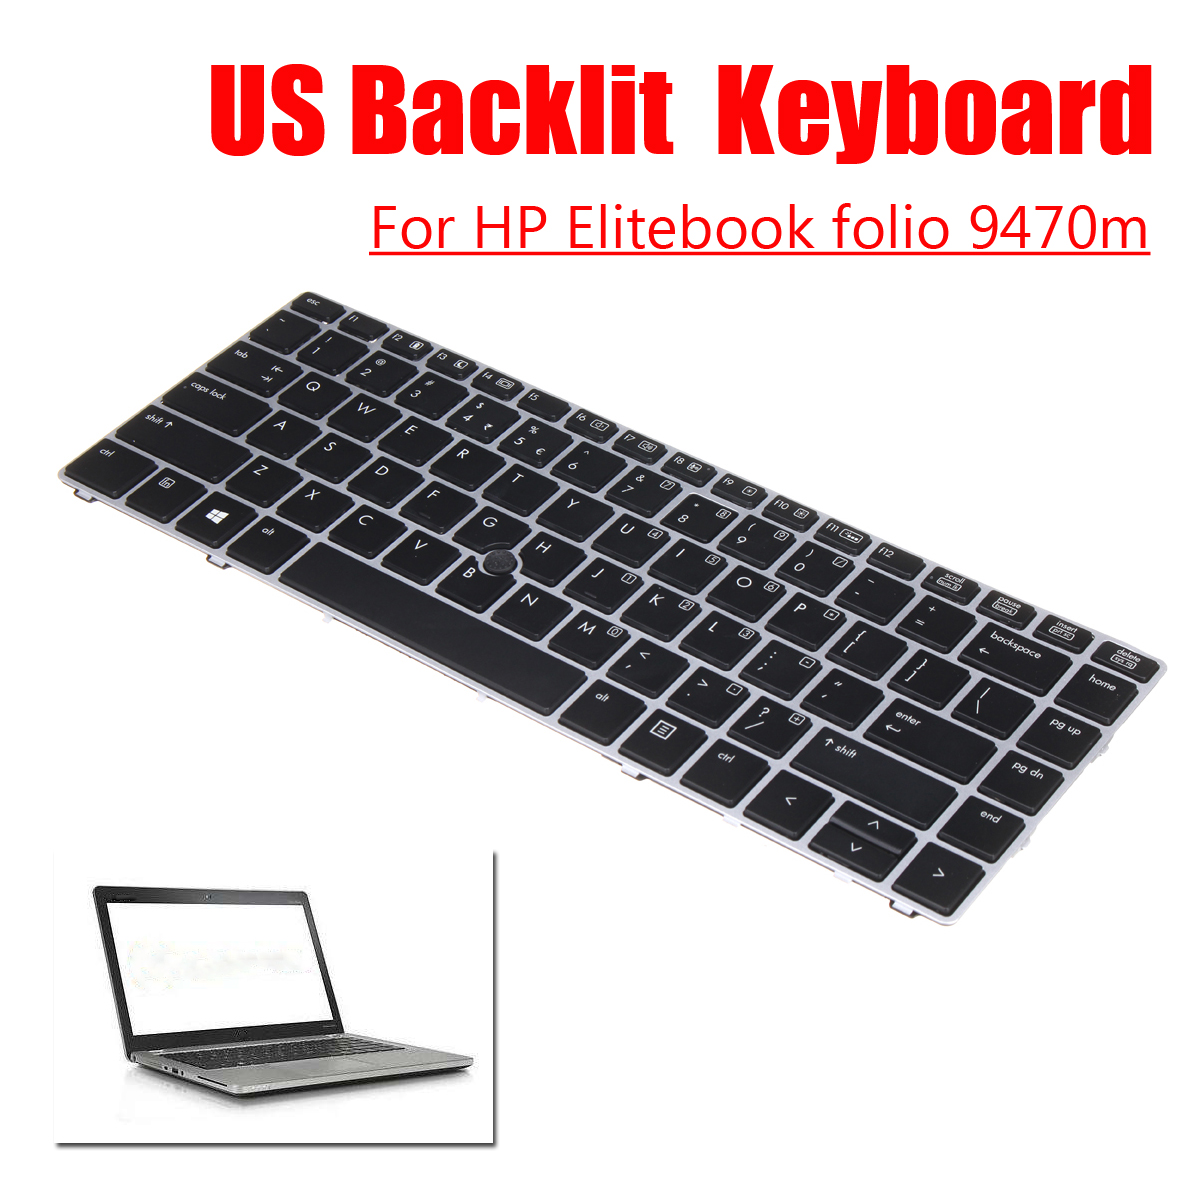 US Keyboard Replacement For HP Elitebook folio 9470m PC Laptop Notebook 697685-001 Computer Keyboards laptop keyboard for hp pavilion 10 f013au 10 f014au f009au black united states us 758644 001